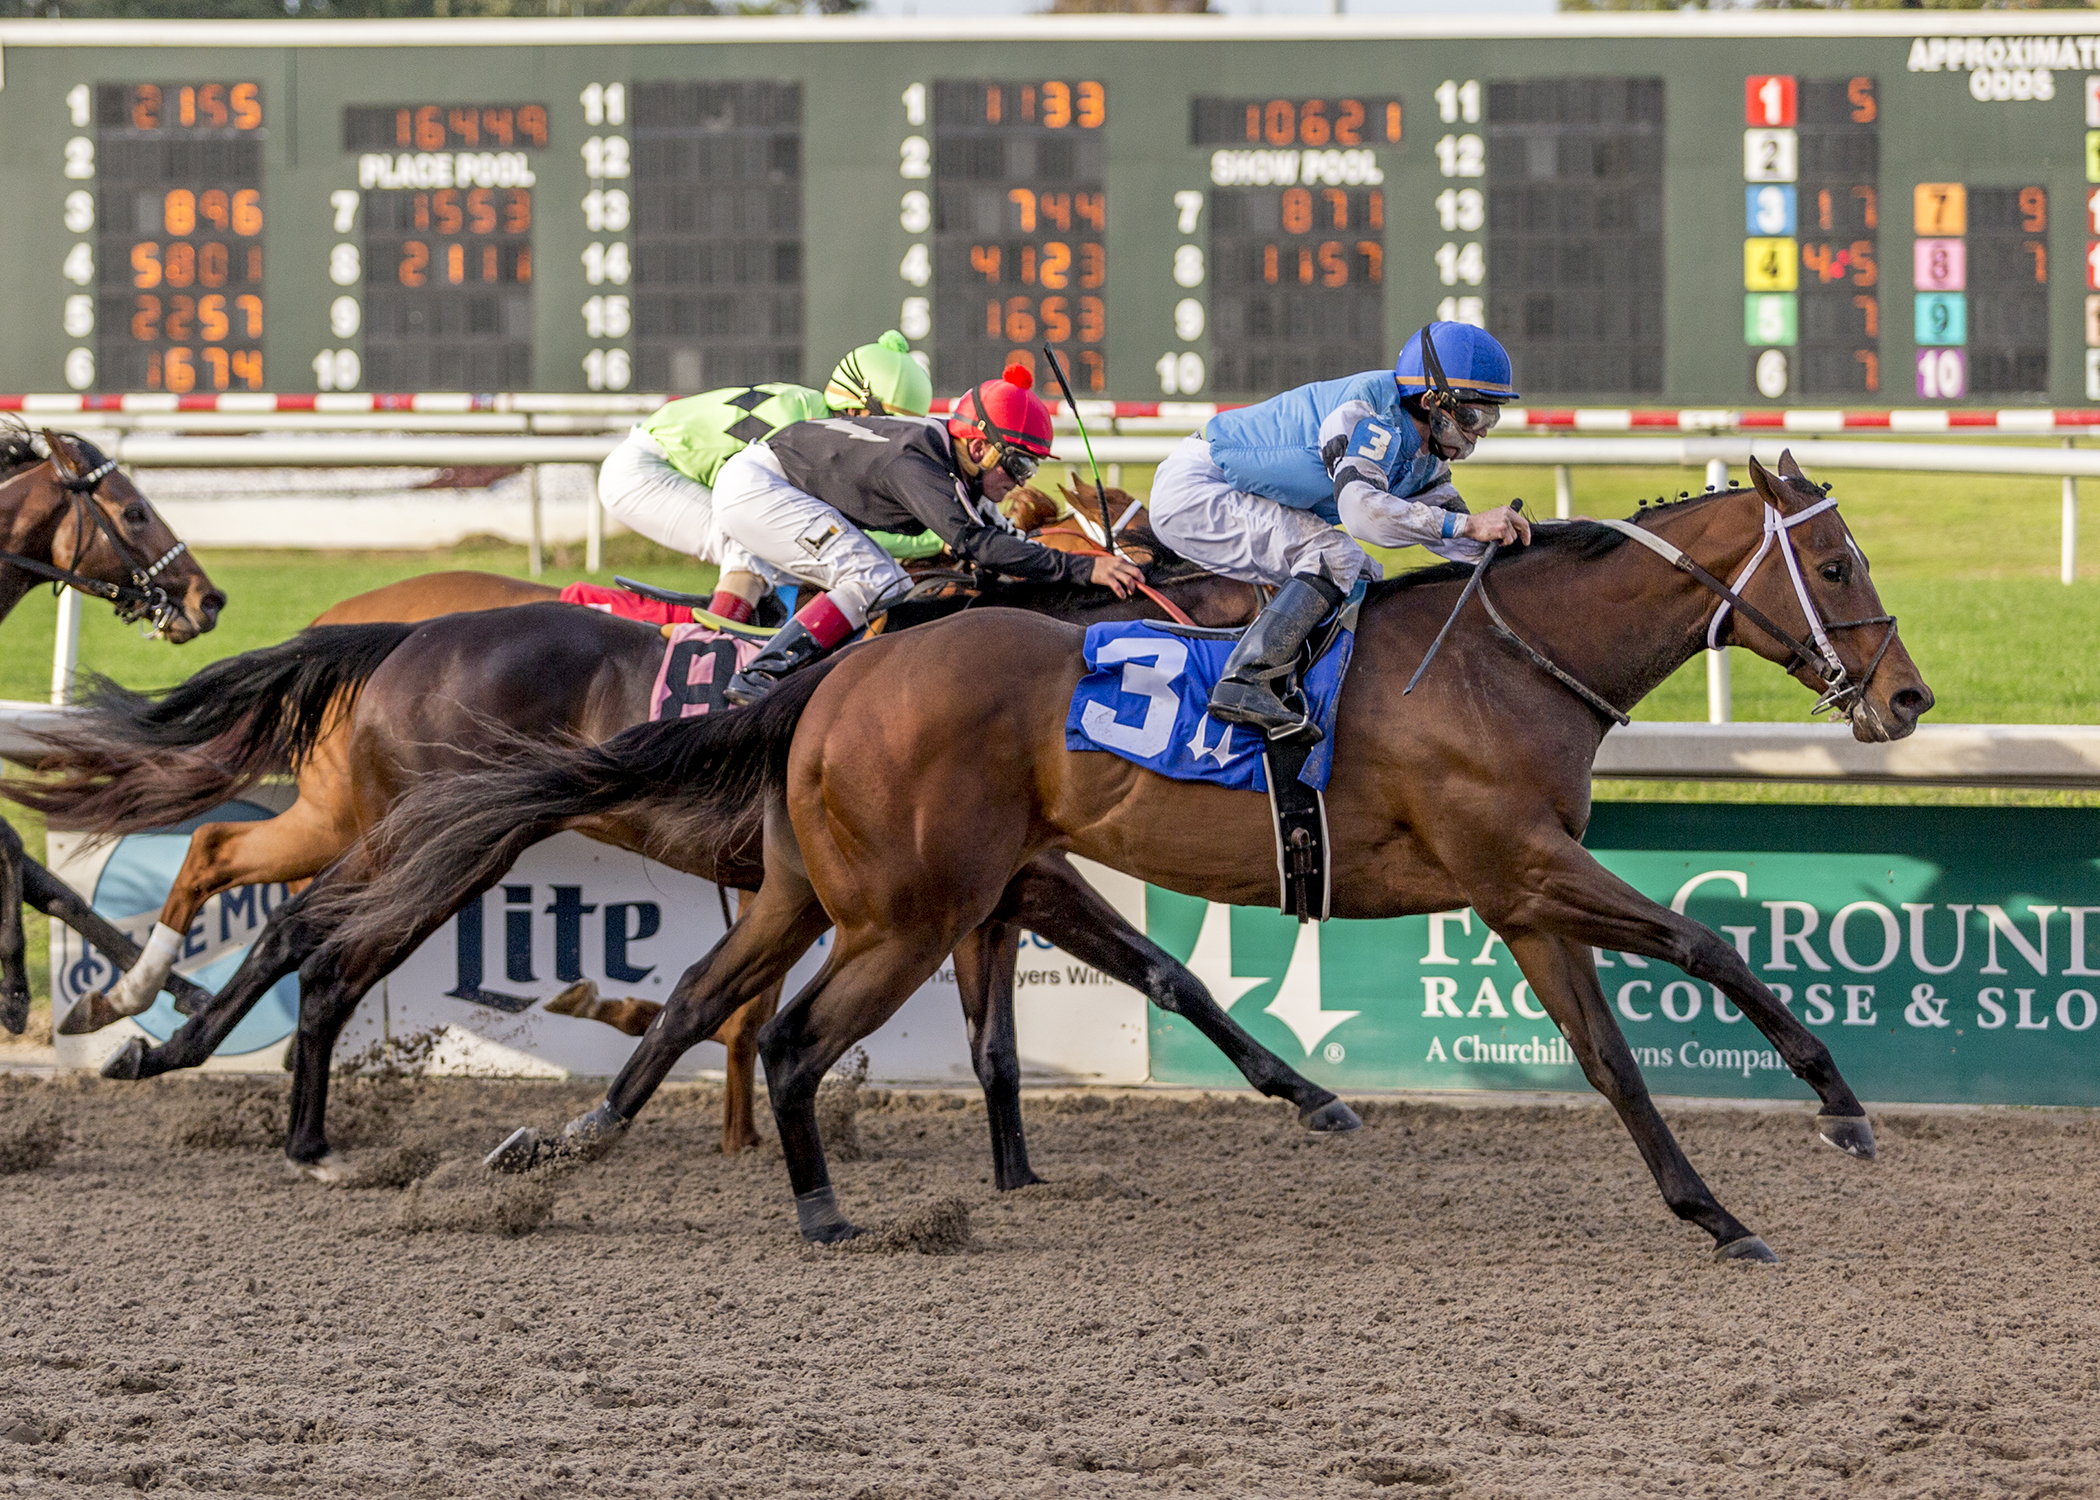 Incorruptible keeps Tapiture's hot streak rolling